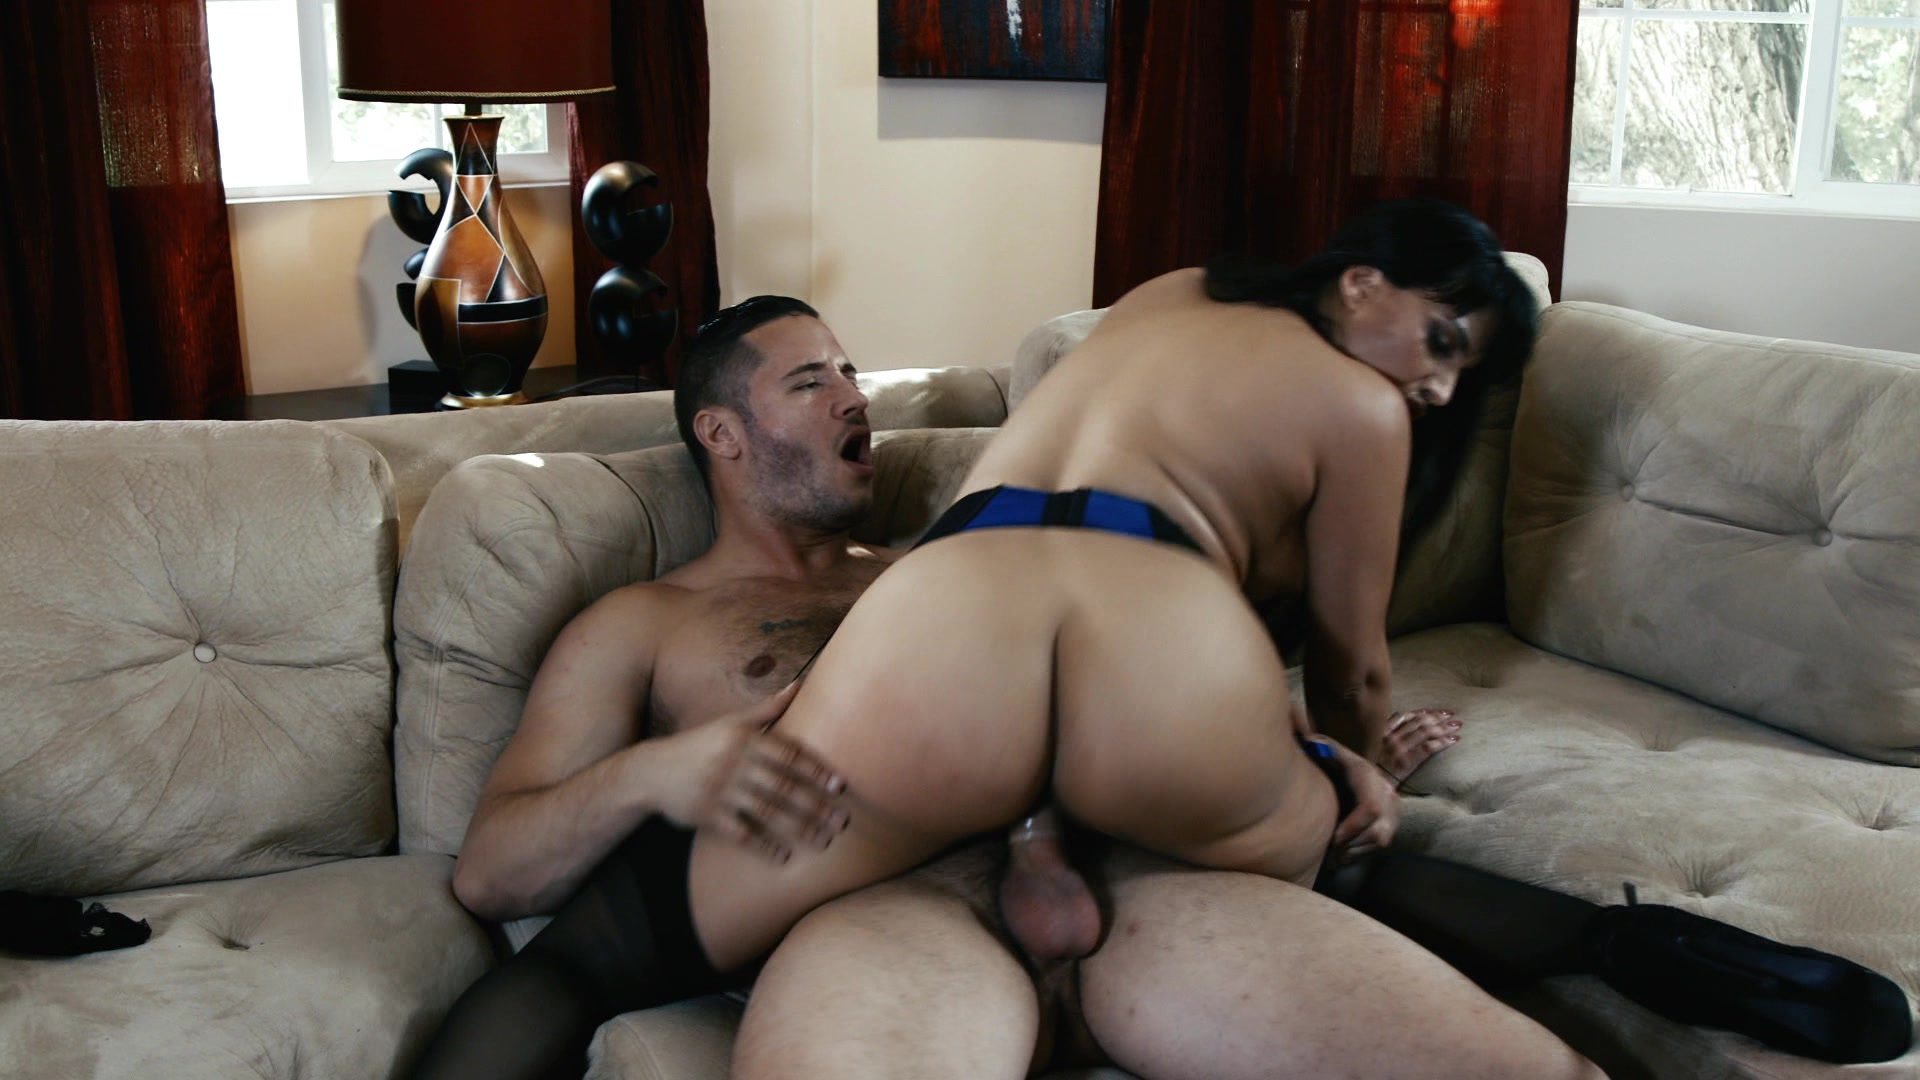 Scene with Danny Mountain and Mercedes Carrera - image 18 out of 20